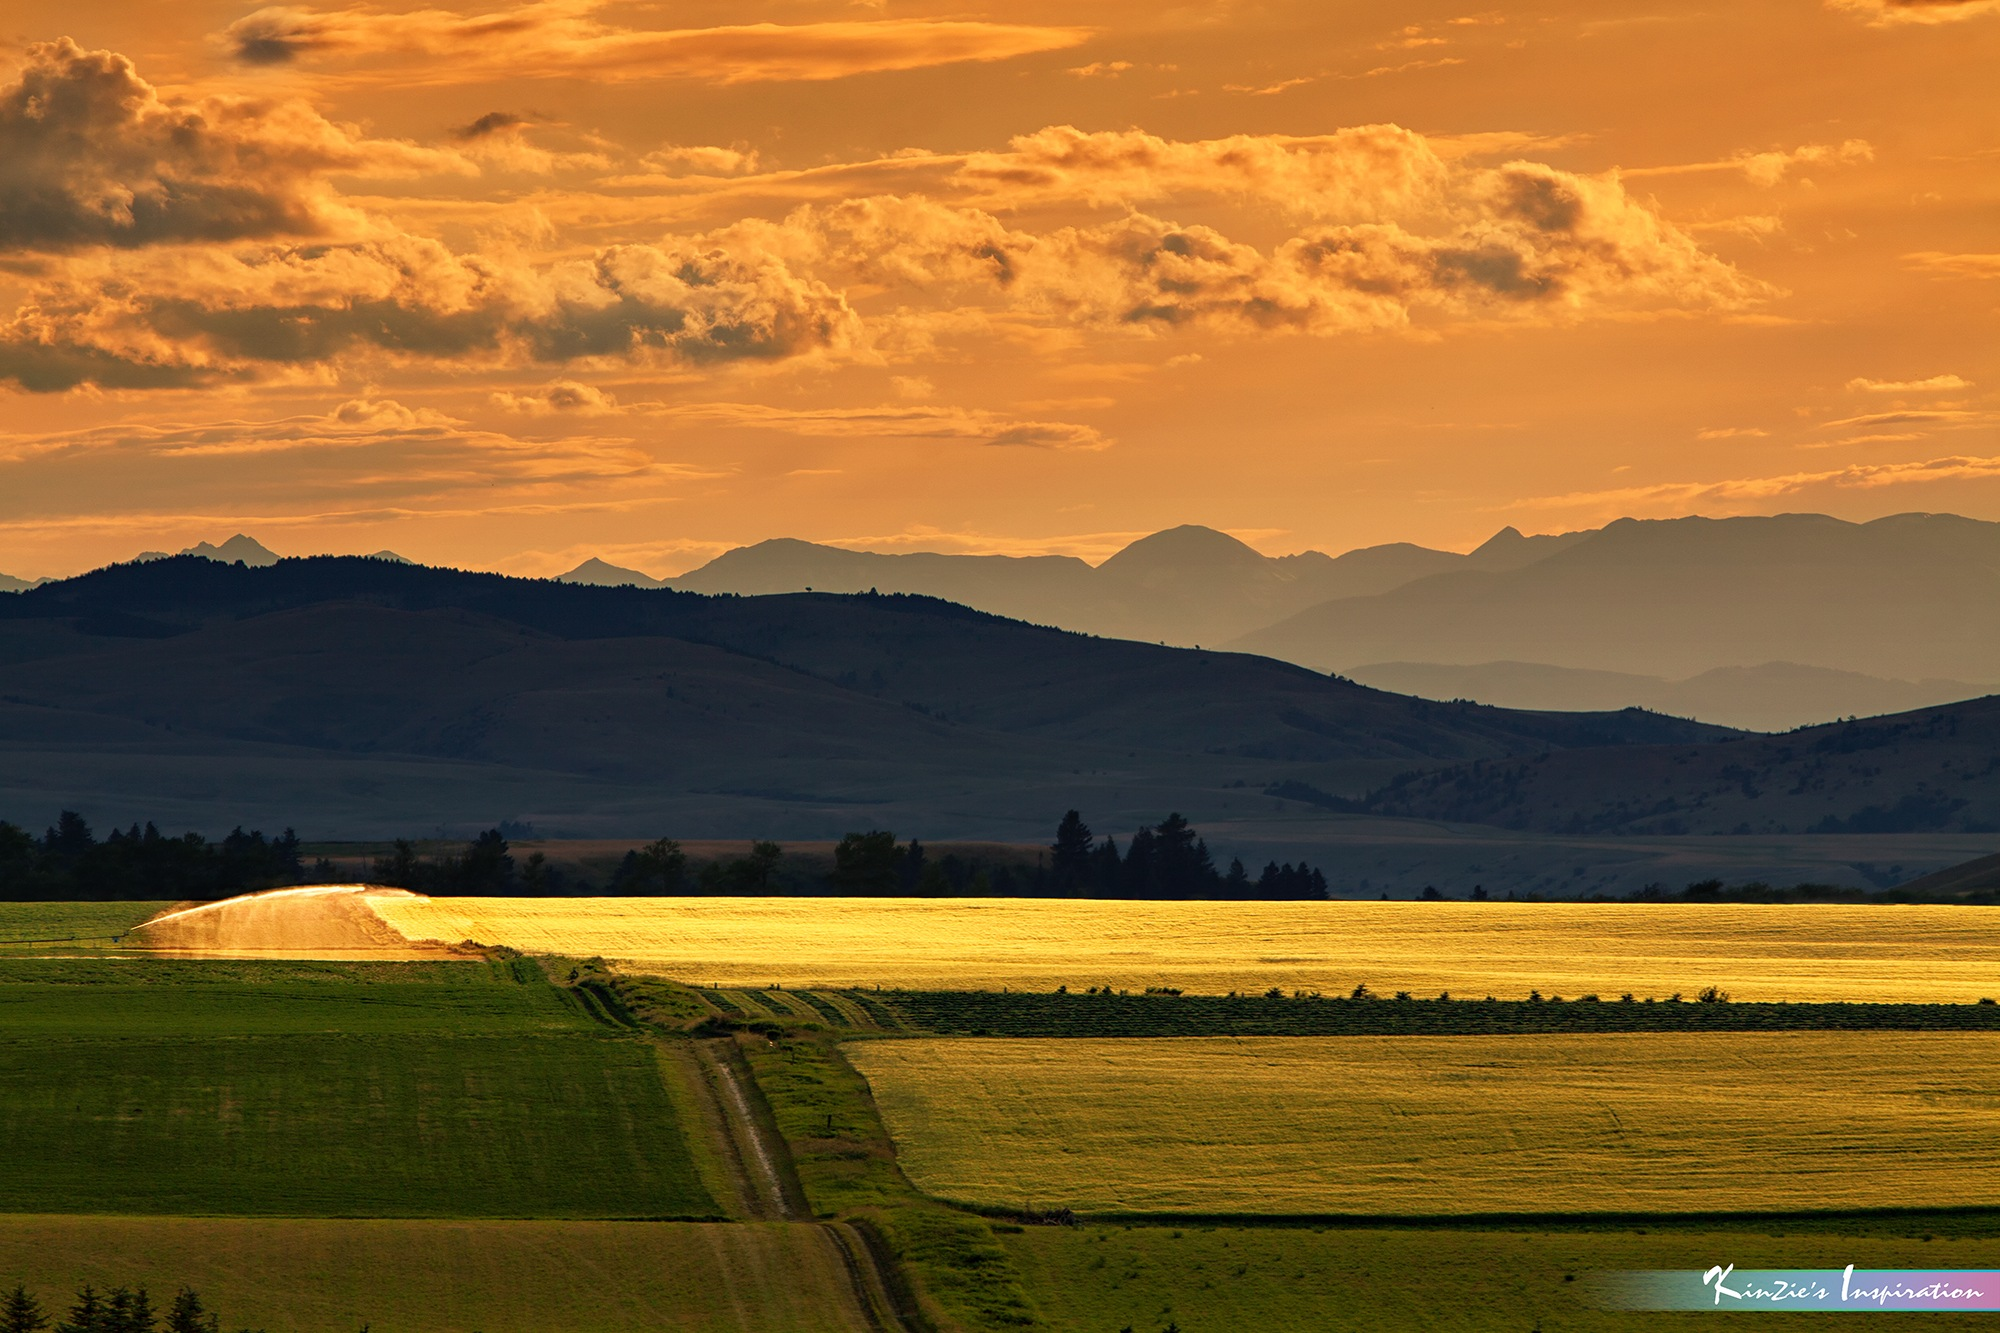 Scenic View of Corn Field & Mountain Layers in Sunset *A Beautiful Nature* by iLOVEnature's Photography Inspiration